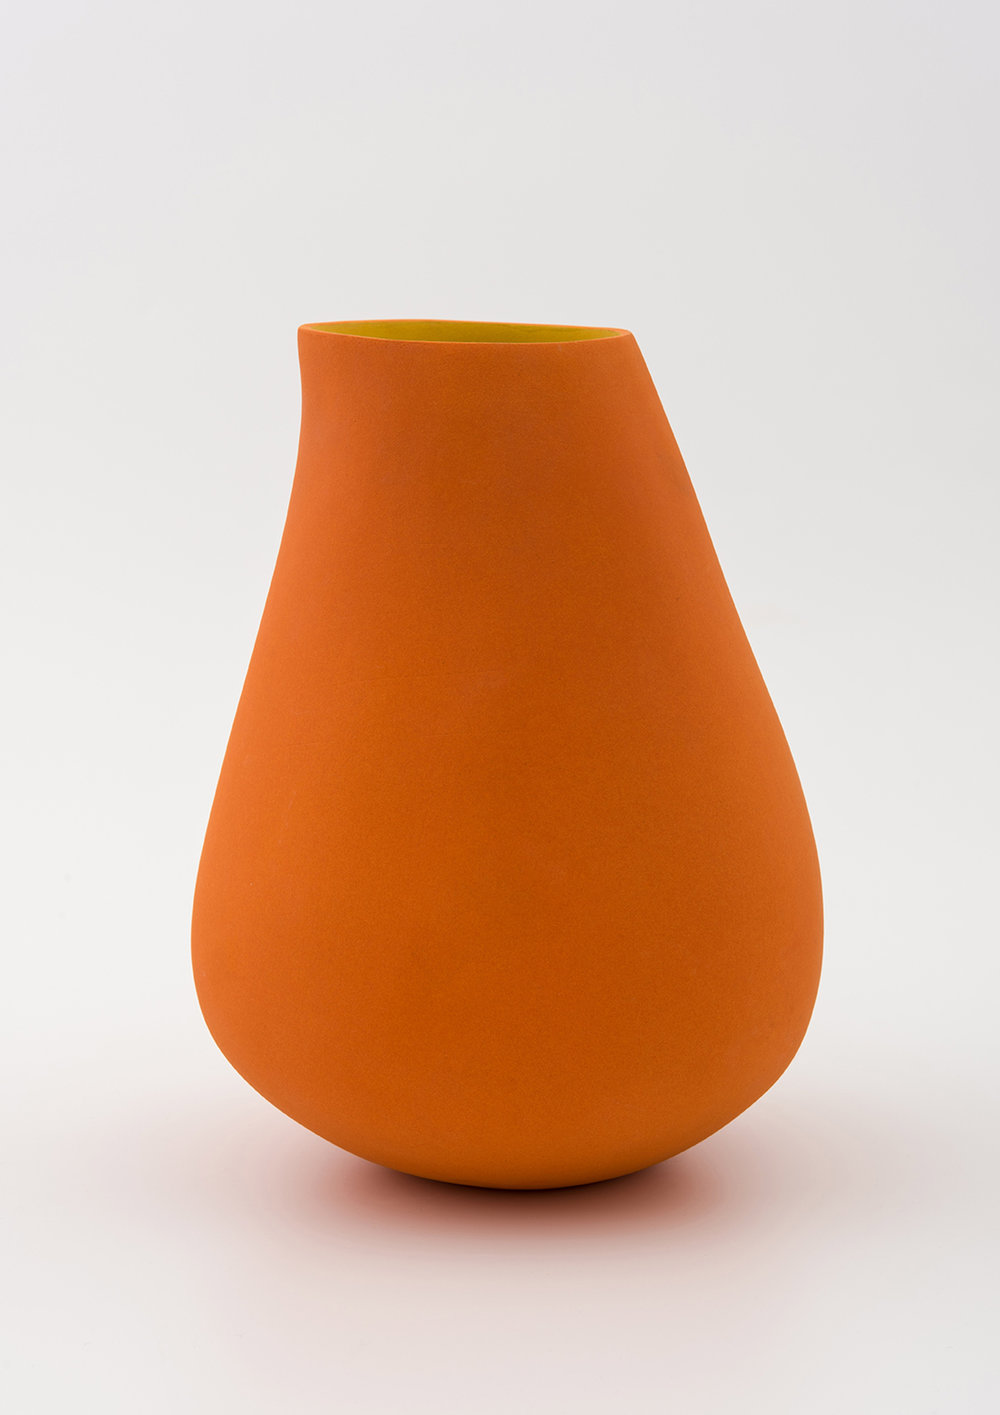 Tall concave vessel form - orange with yellow - height approx 25cm